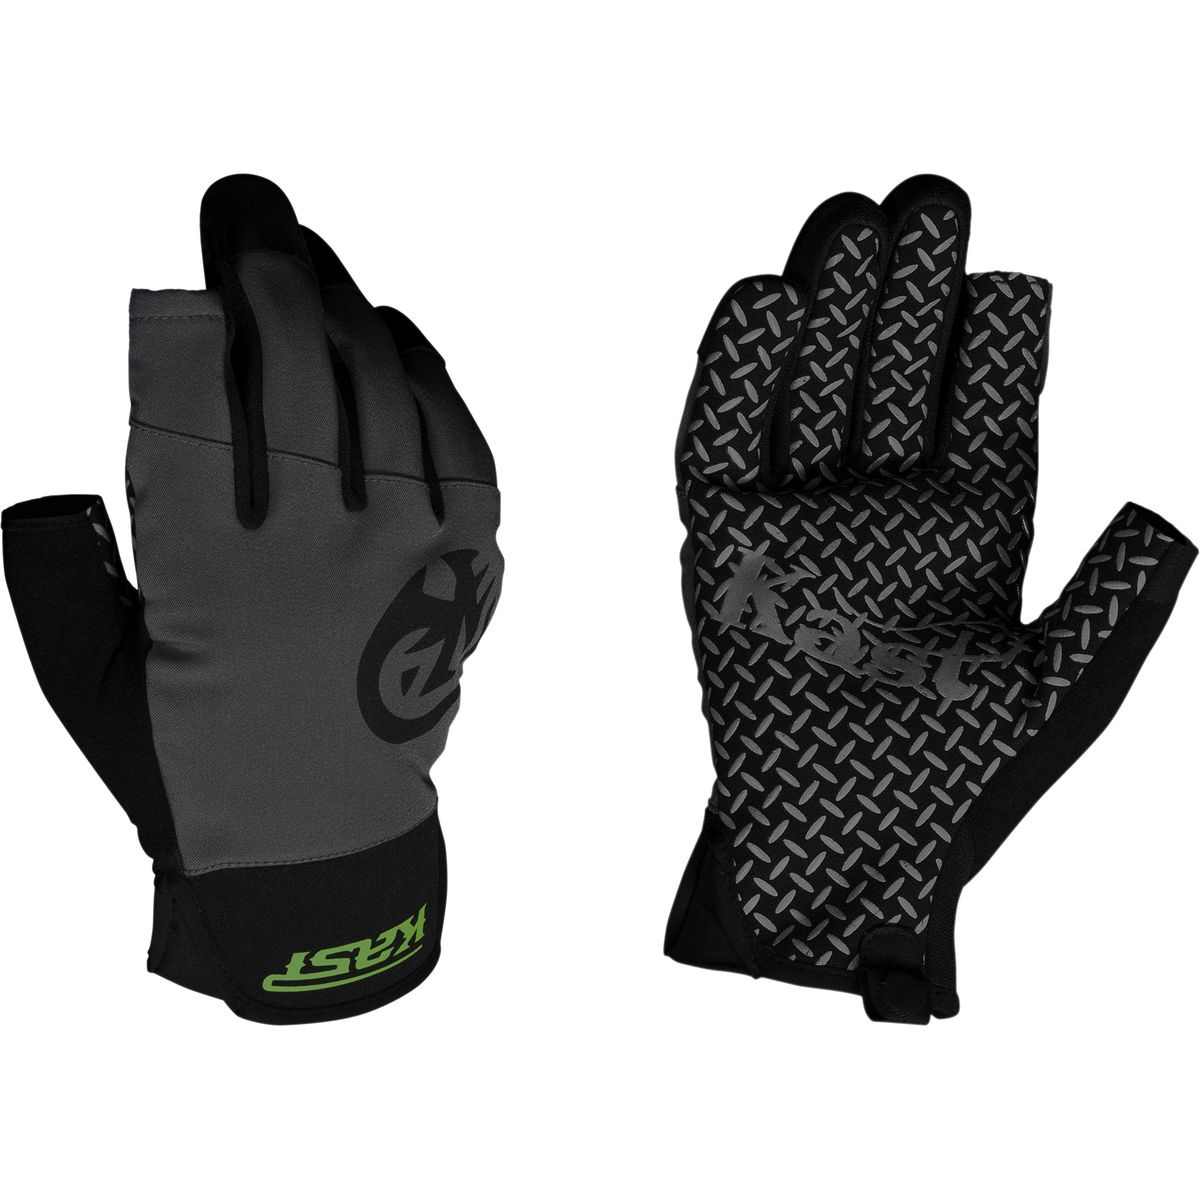 Kast Gear Raptor Trigger Glove Slate Grey Black M